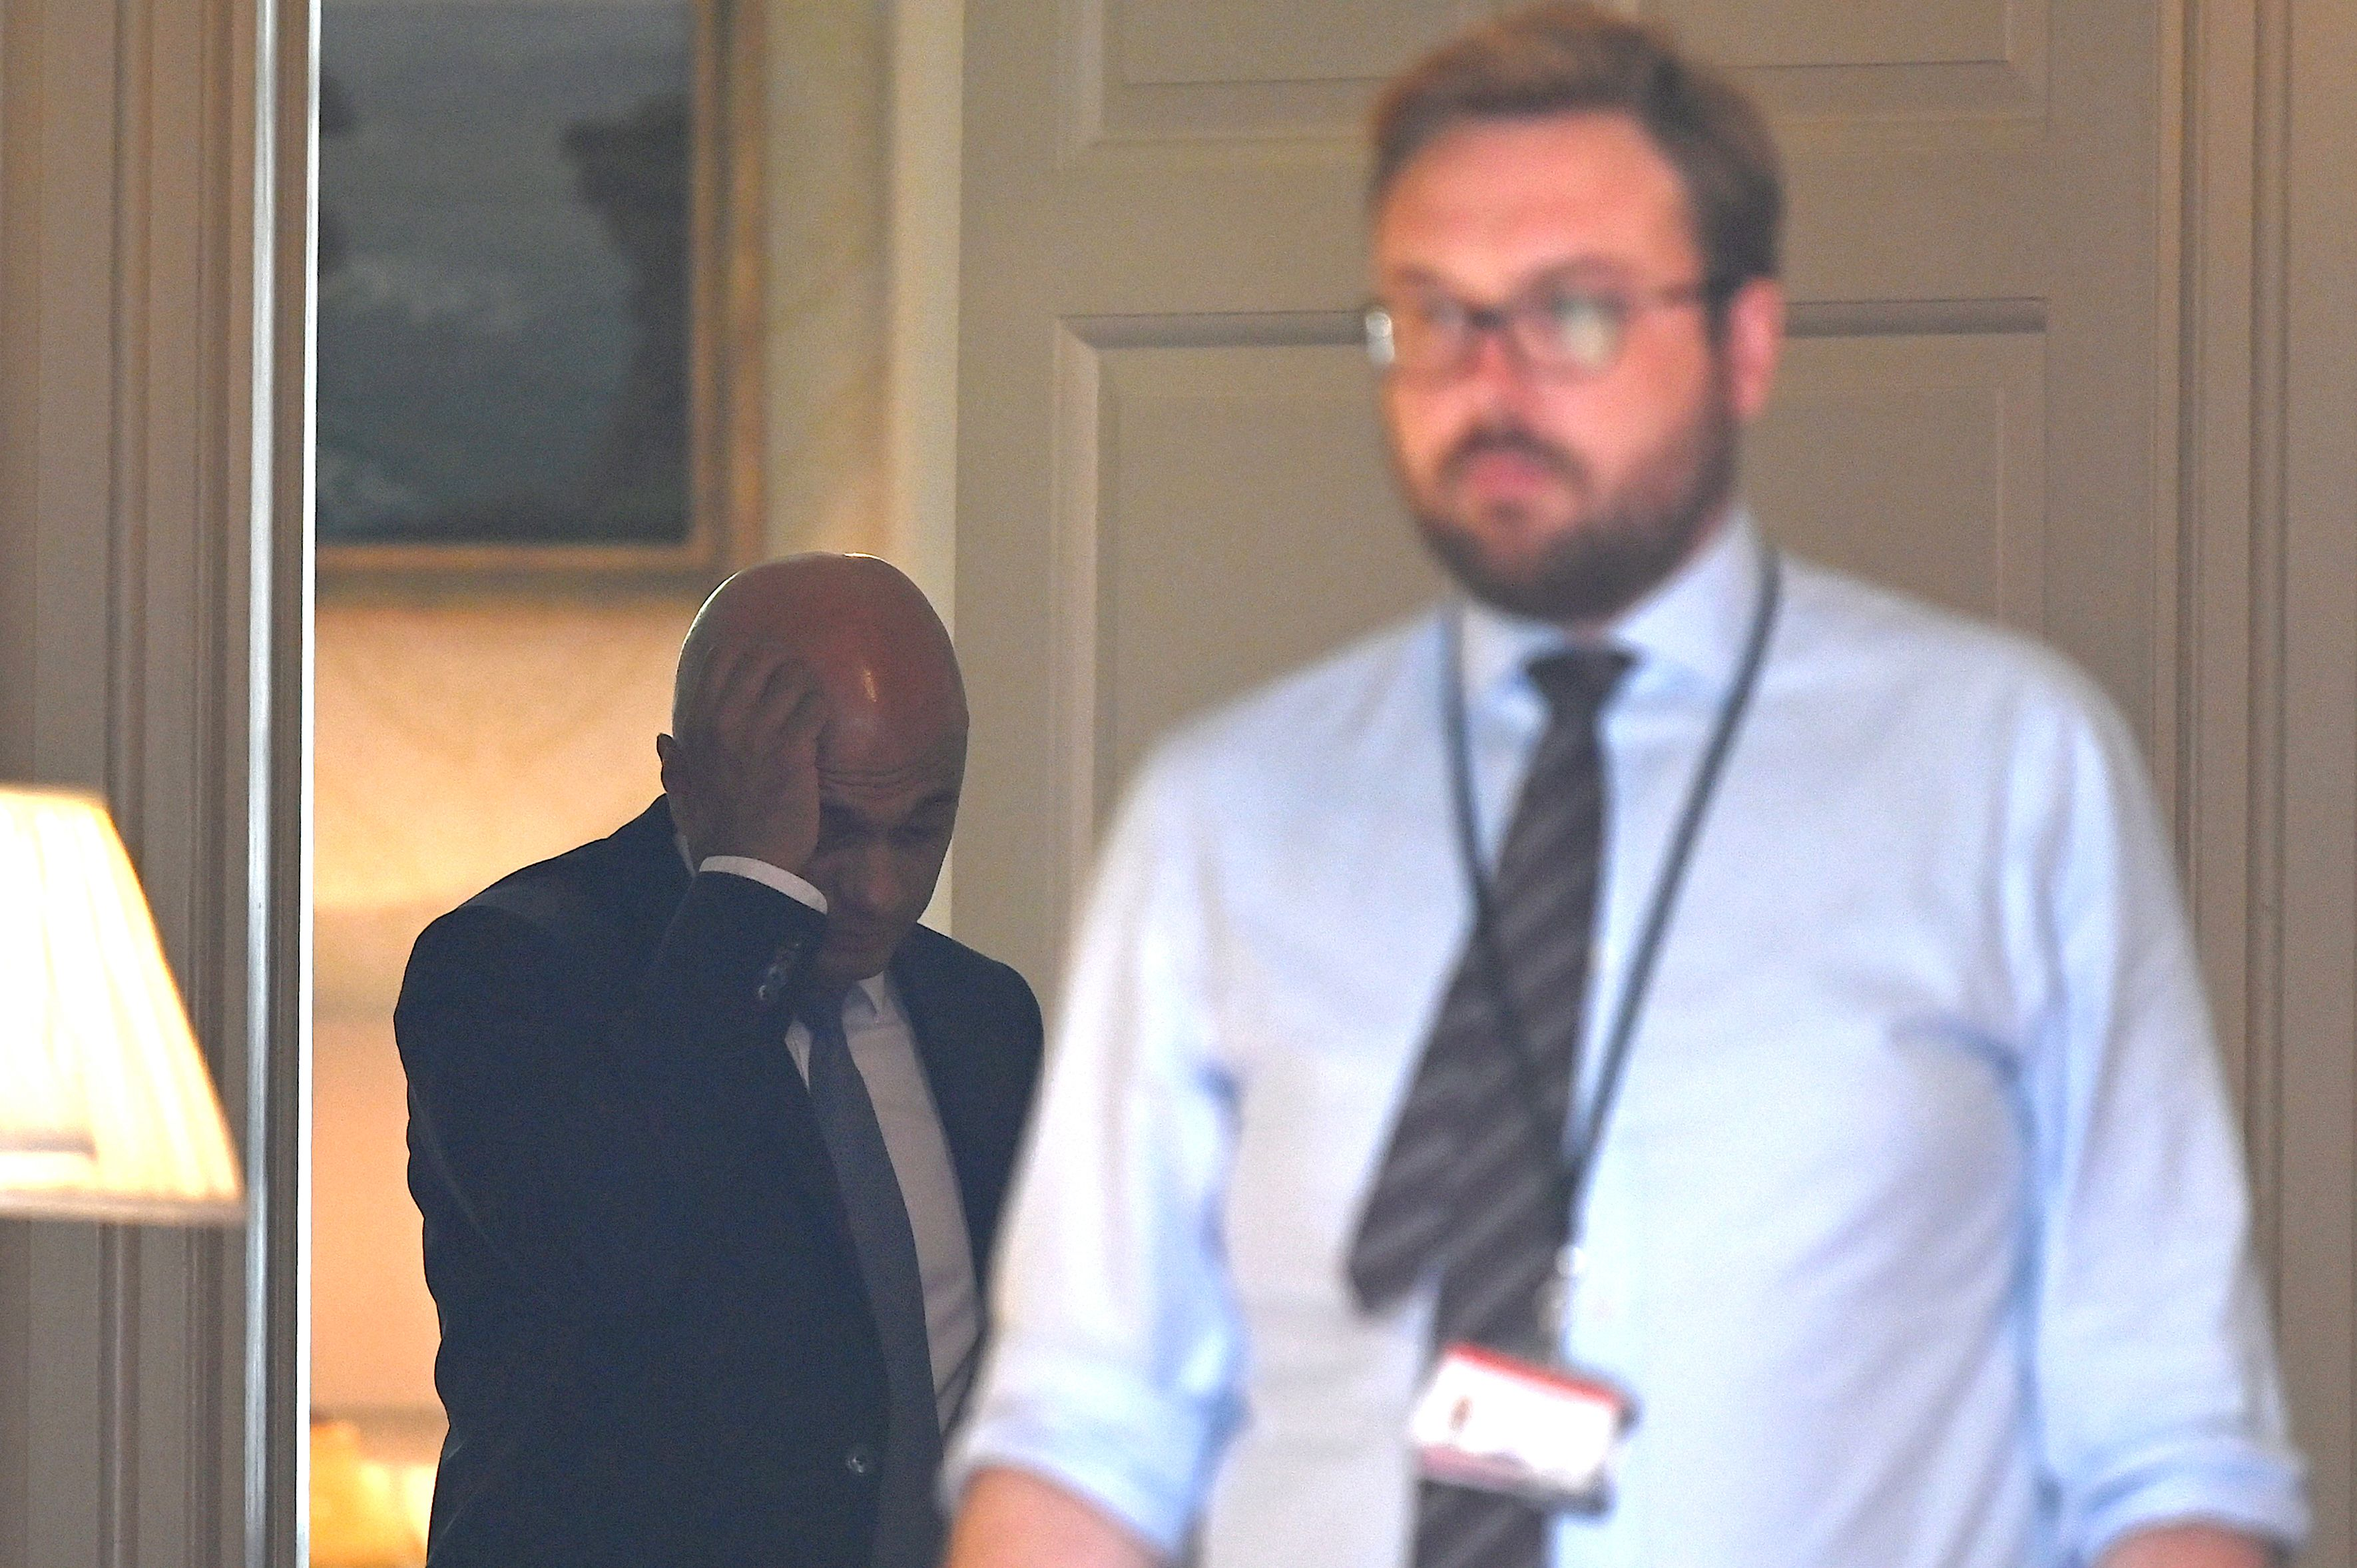 A picture taken from the street looking through the open door of 11 Downing Street in central London on August 28, 2019 shows Britain's Chancellor of the Exchequer Sajid Javid (L) inside 11 Downing Street. - British Prime Minister Boris Johnson announced Wednesday that the suspension of parliament would be extended until October 14 -- just two weeks before the UK is set to leave the EU -- enraging anti-Brexit MPs. (Photo by DANIEL LEAL-OLIVAS / AFP)        (Photo credit should read DANIEL LEAL-OLIVAS/AFP/Getty Images)